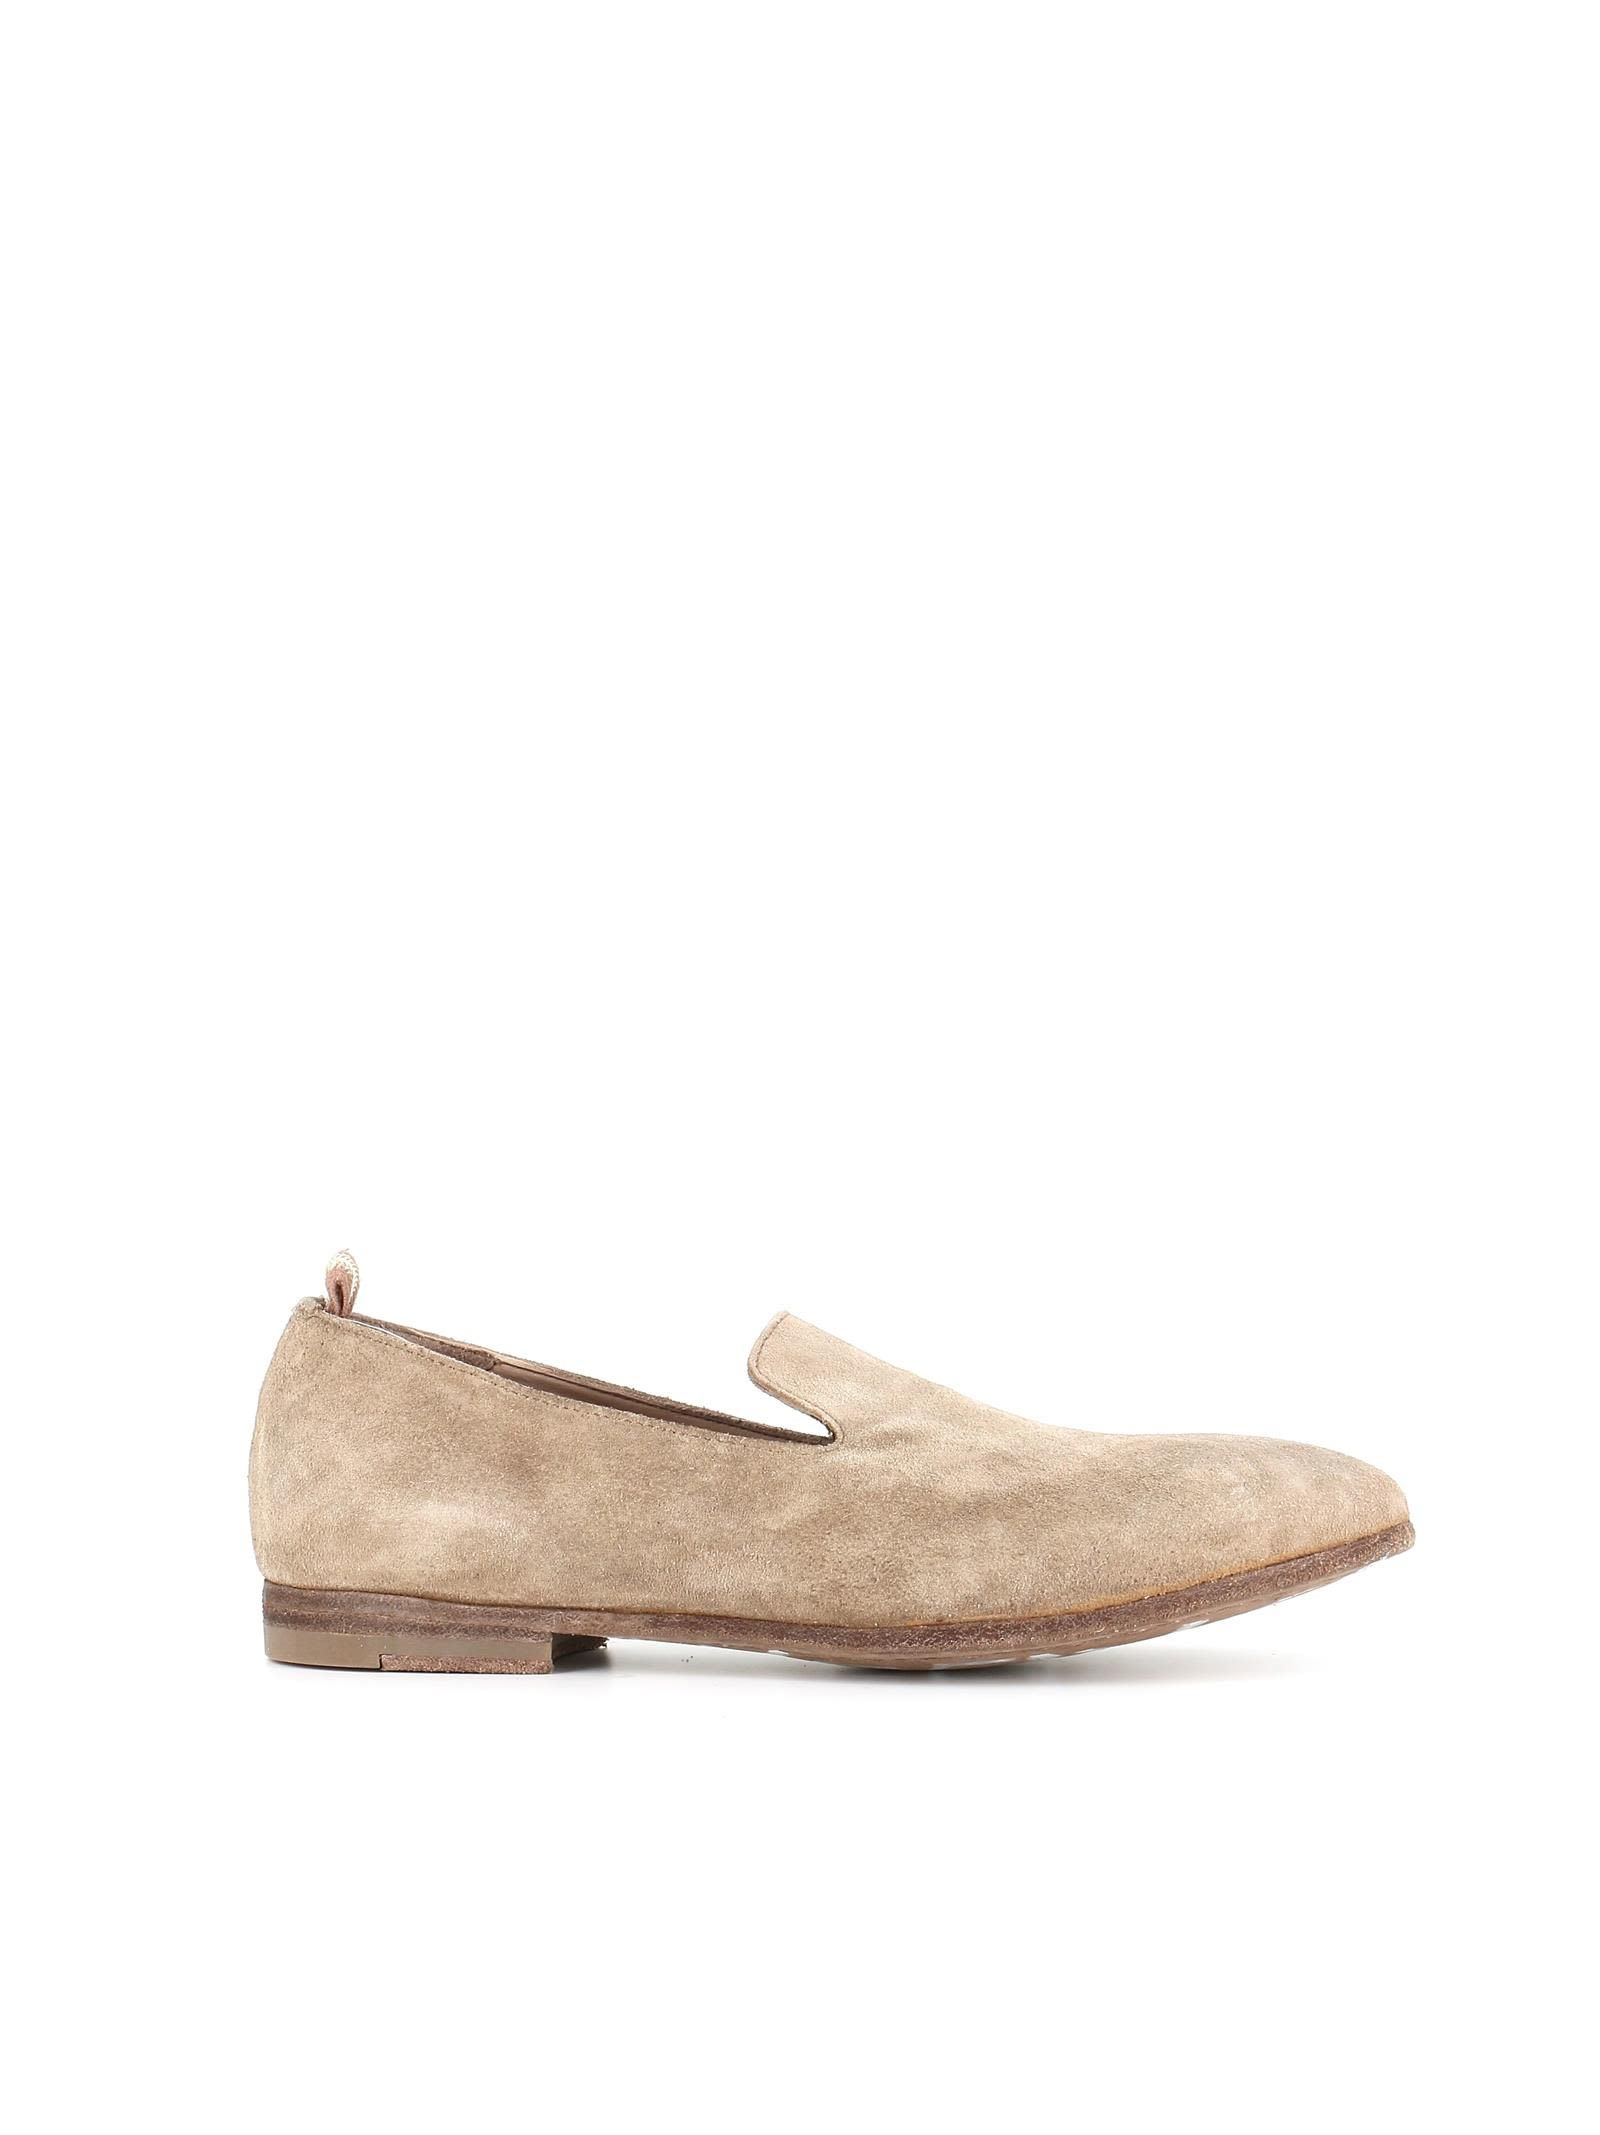 Hot Sale Officine creative Slipper jep-101 Cheap Sale Big Discount Clearance Sneakernews Outlet Browse Low Price Cheap Online W2t5SJ8